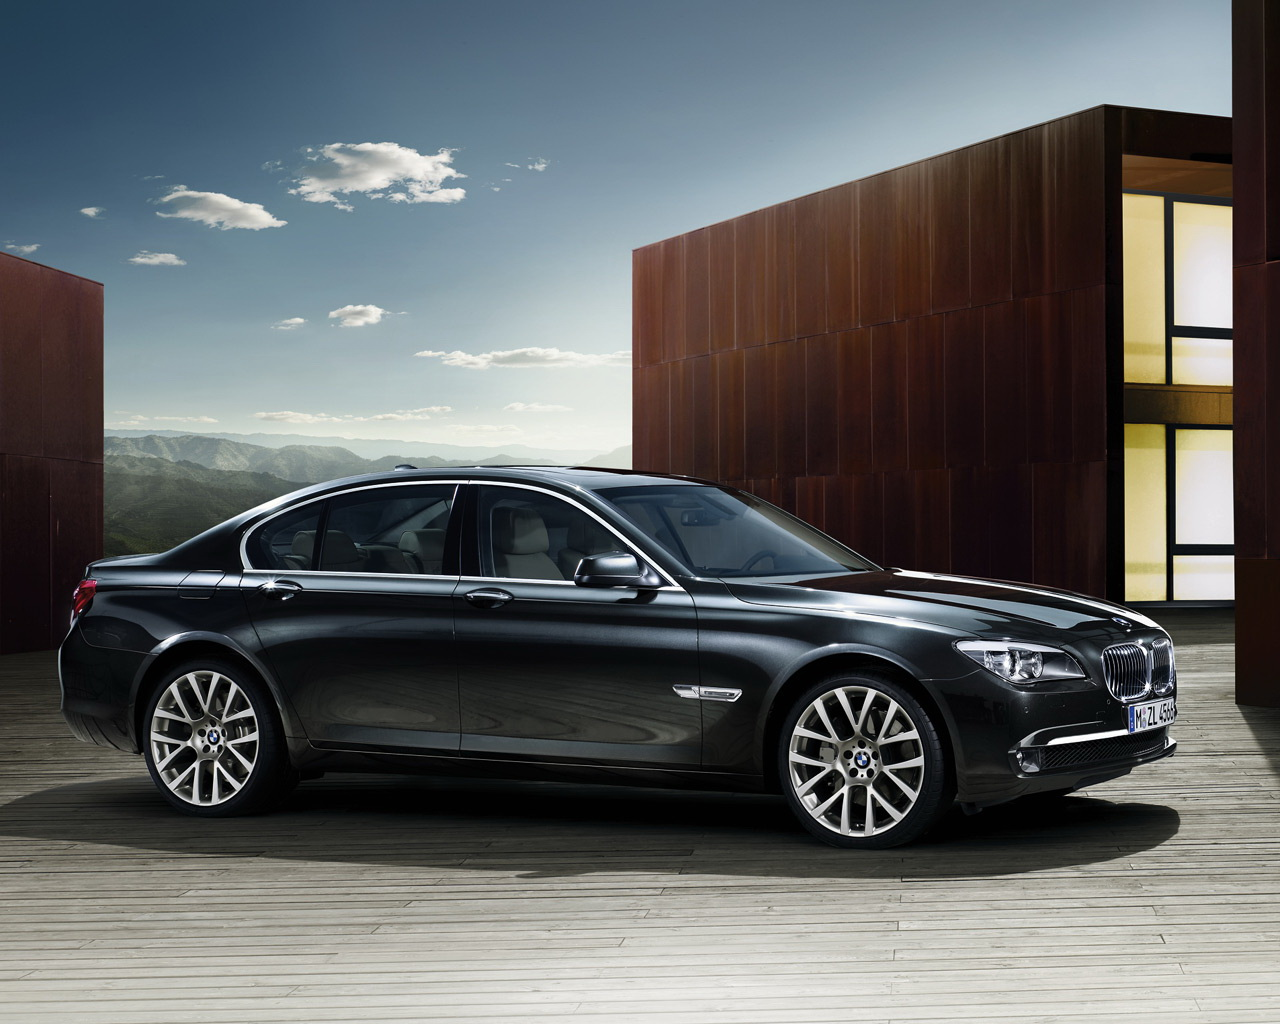 Automotive Luxury Limo and Car Service image 9